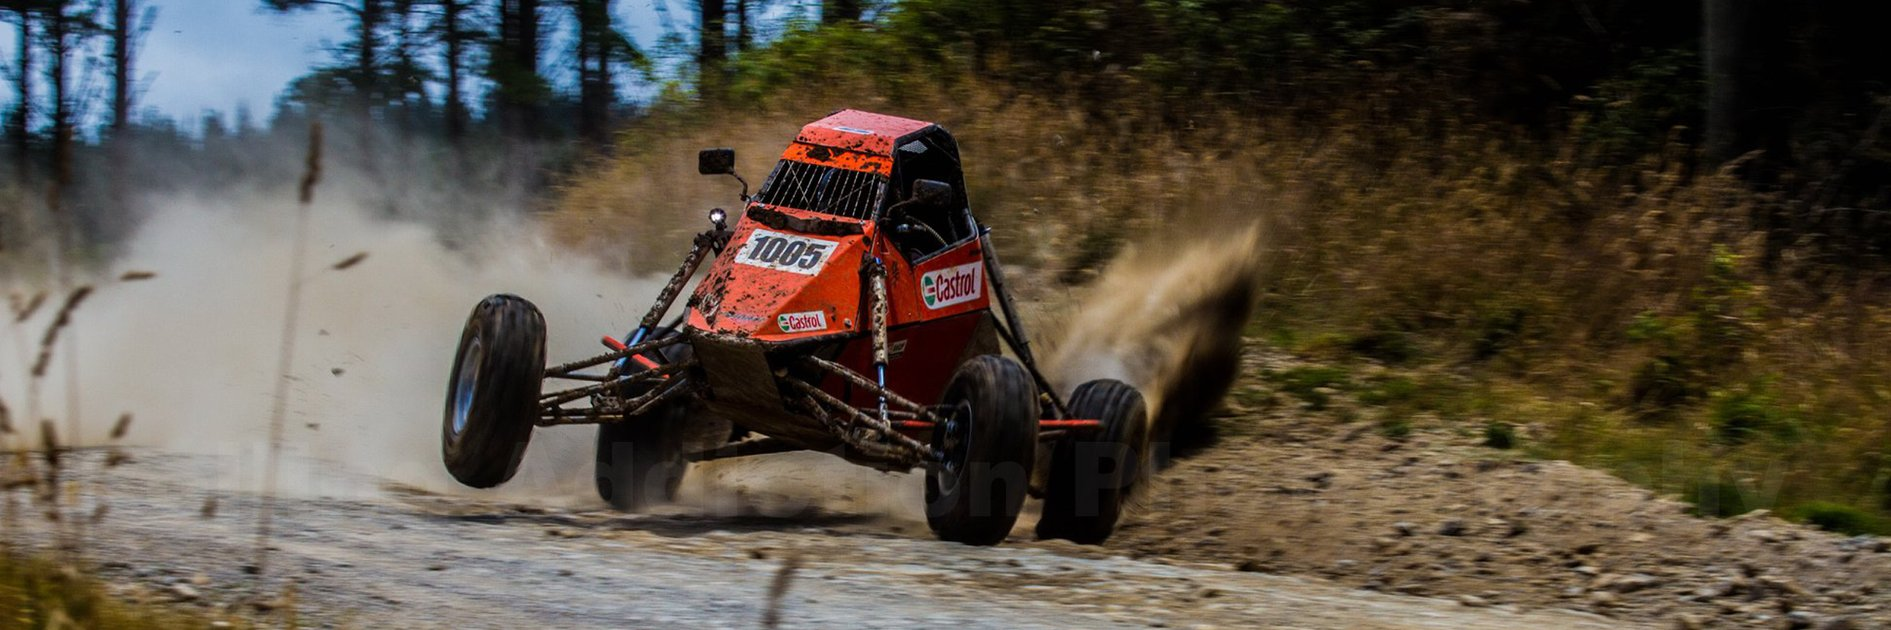 The Edge Products | The Edge Products - Dune Buggy Plans and